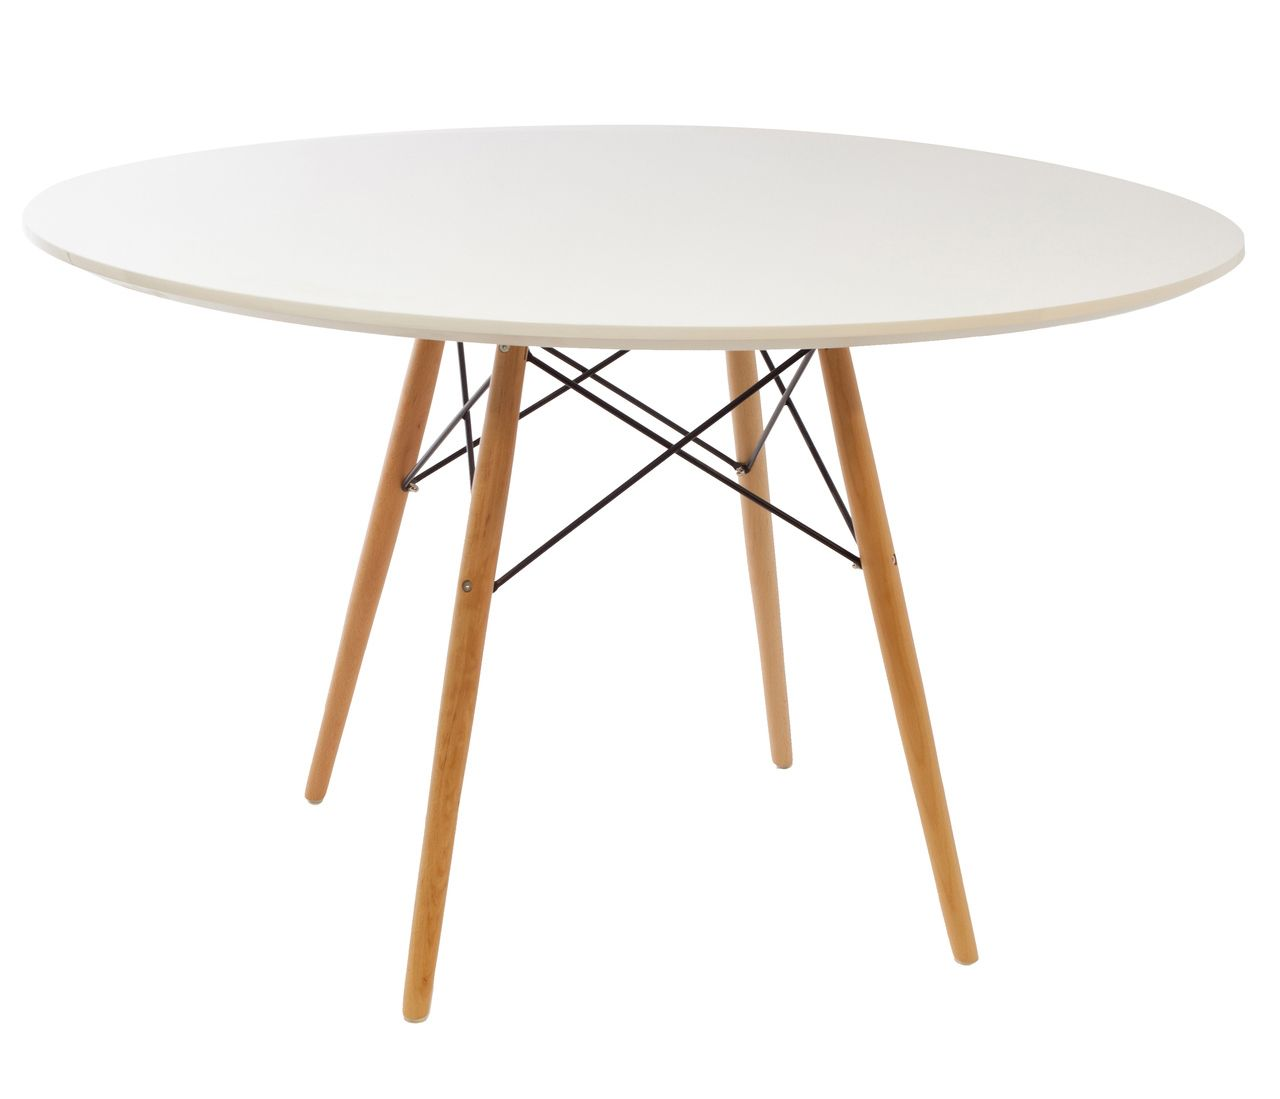 Replica Eames Dsw Dining Table 120cm Black Or White Top Dining